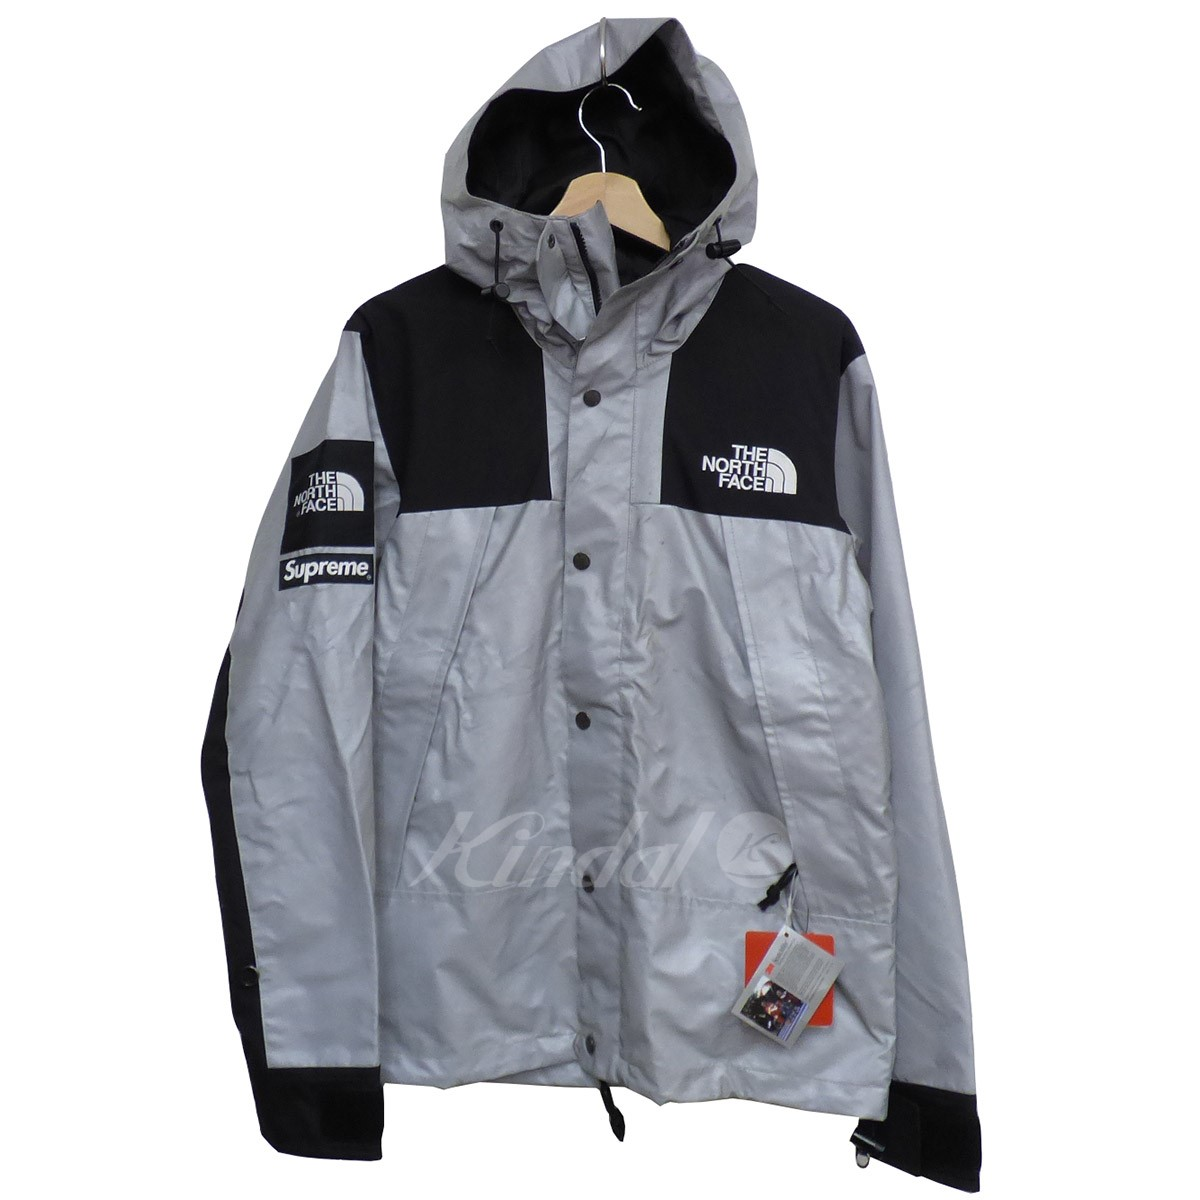 【中古】Supreme×THE NORTH FACE 13SS Reflective 3M Mountain Parkaリフレクターマウンテンパーカー 【送料無料】 【000549】 【KIND1550】